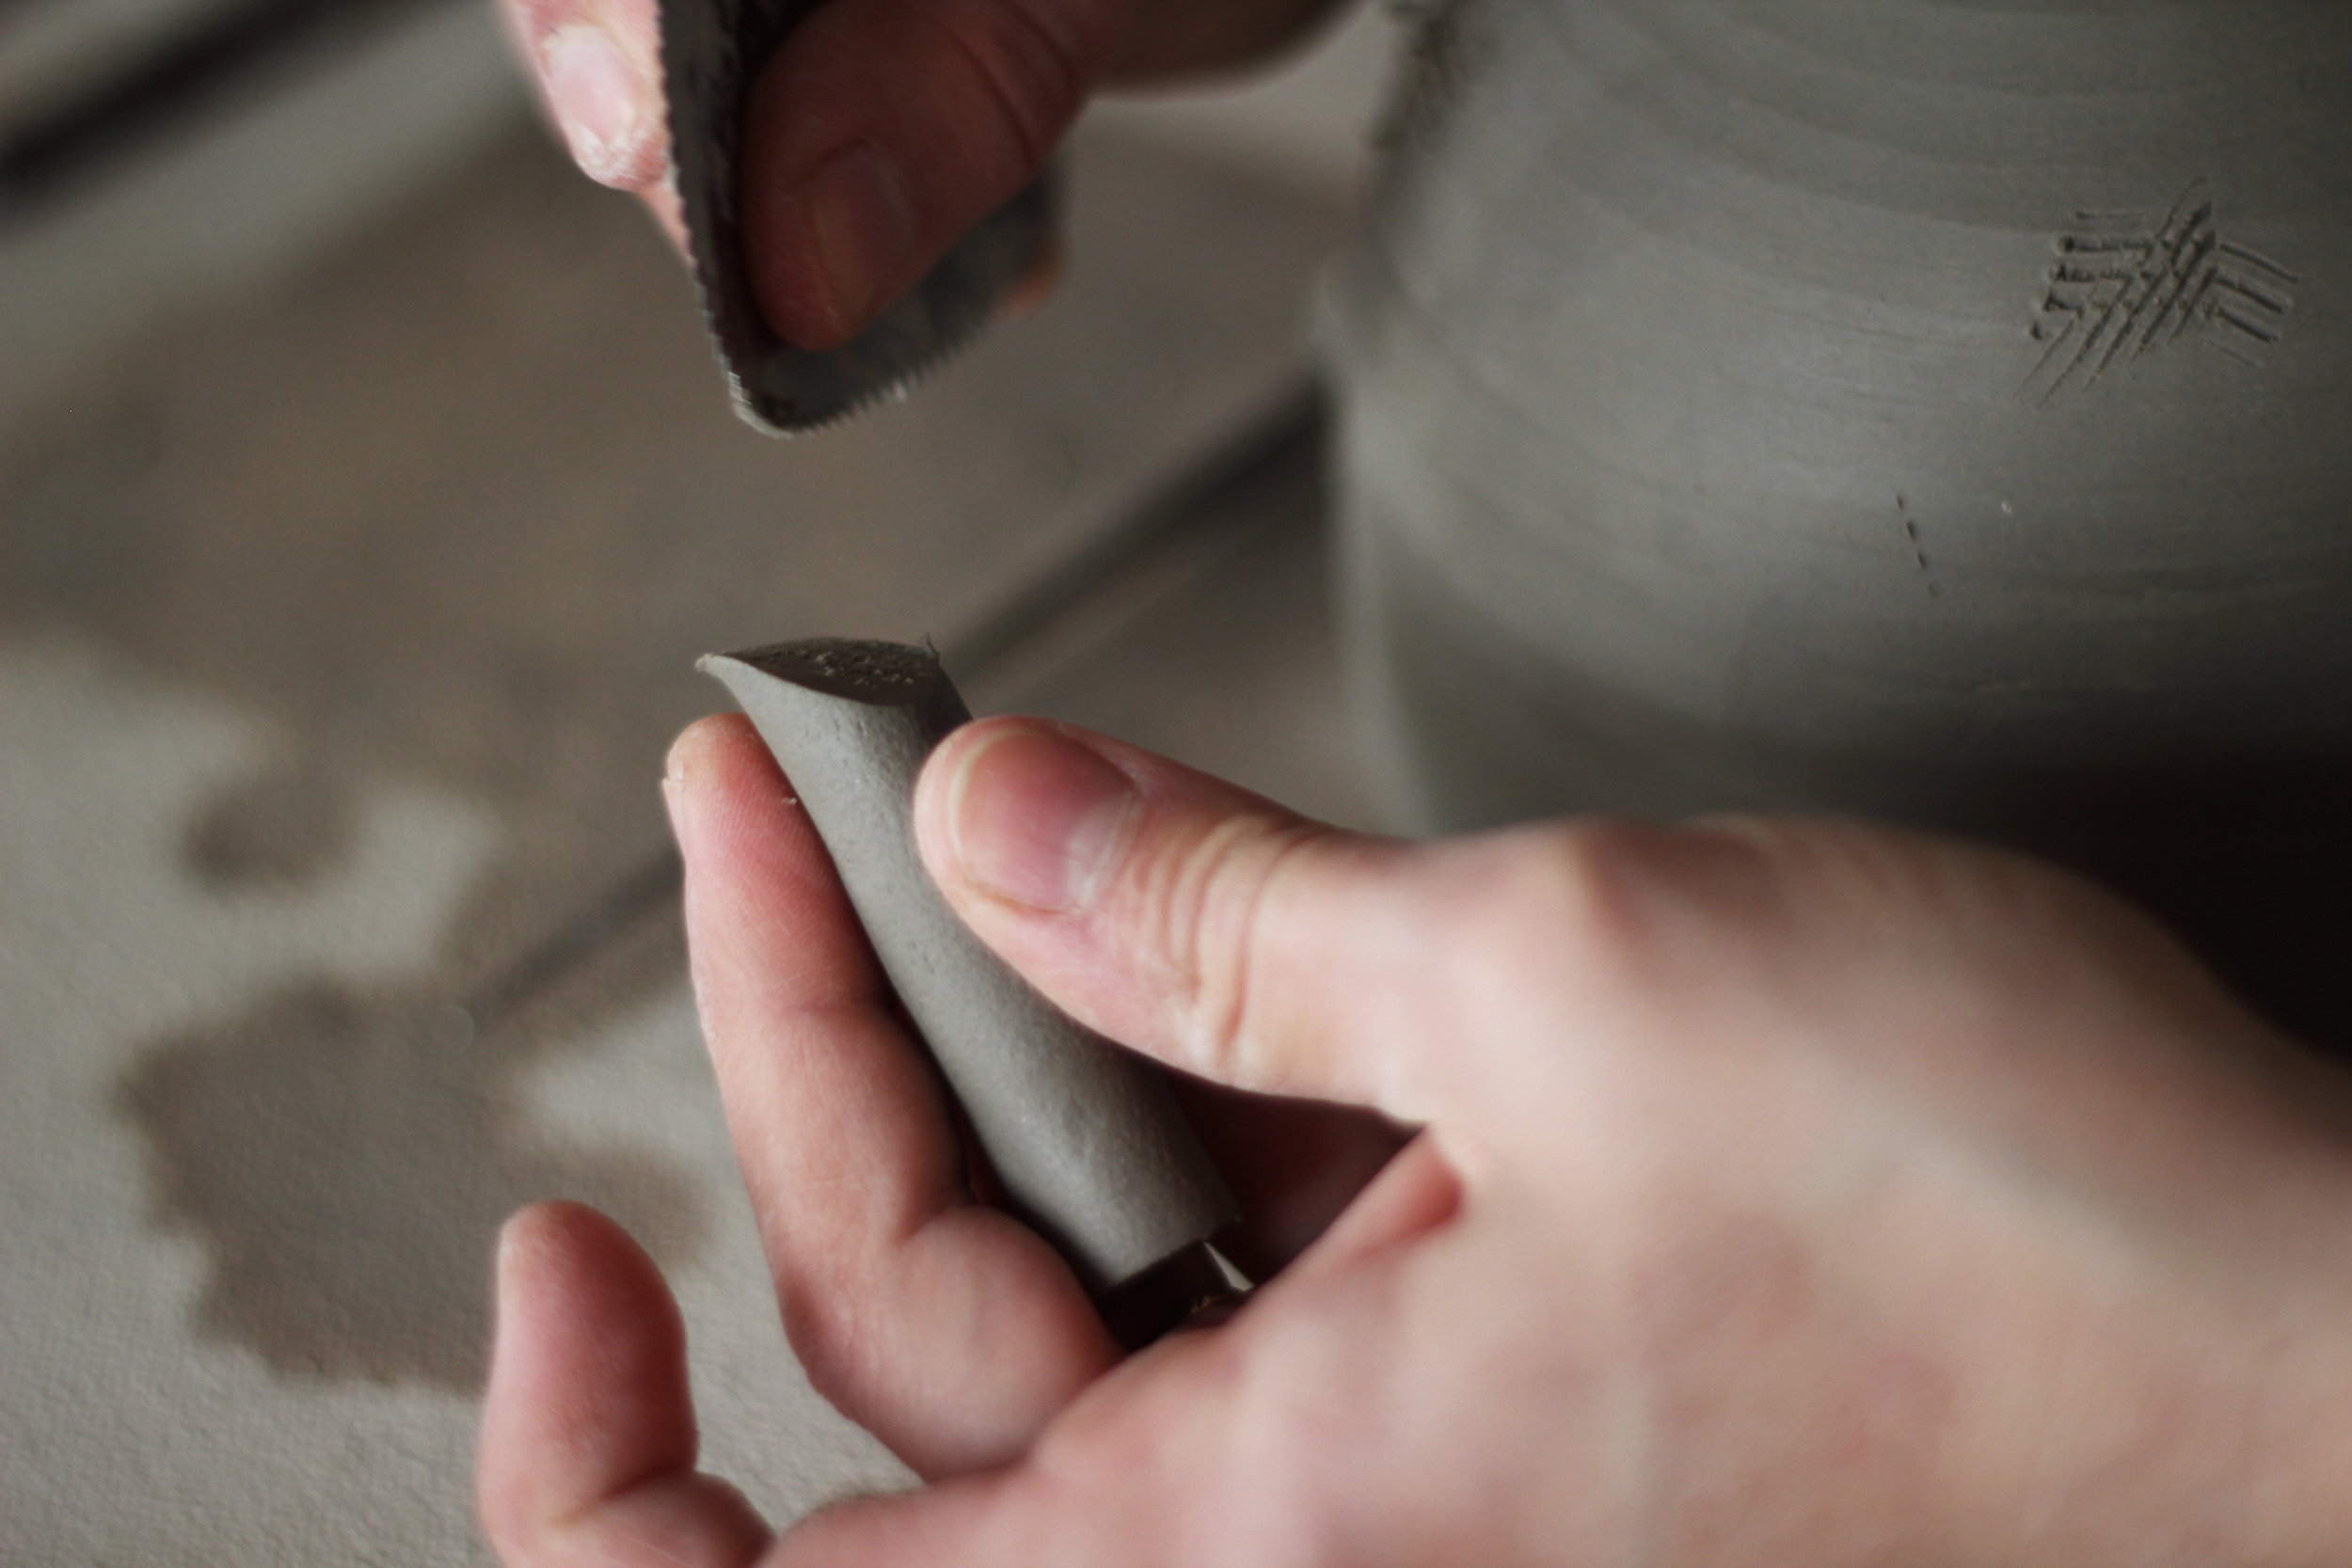 Alicia applies the mug handles and planter legs, smoothing them out to prepare them for dipping in colour. This photo shows a planter getting its legs put on.